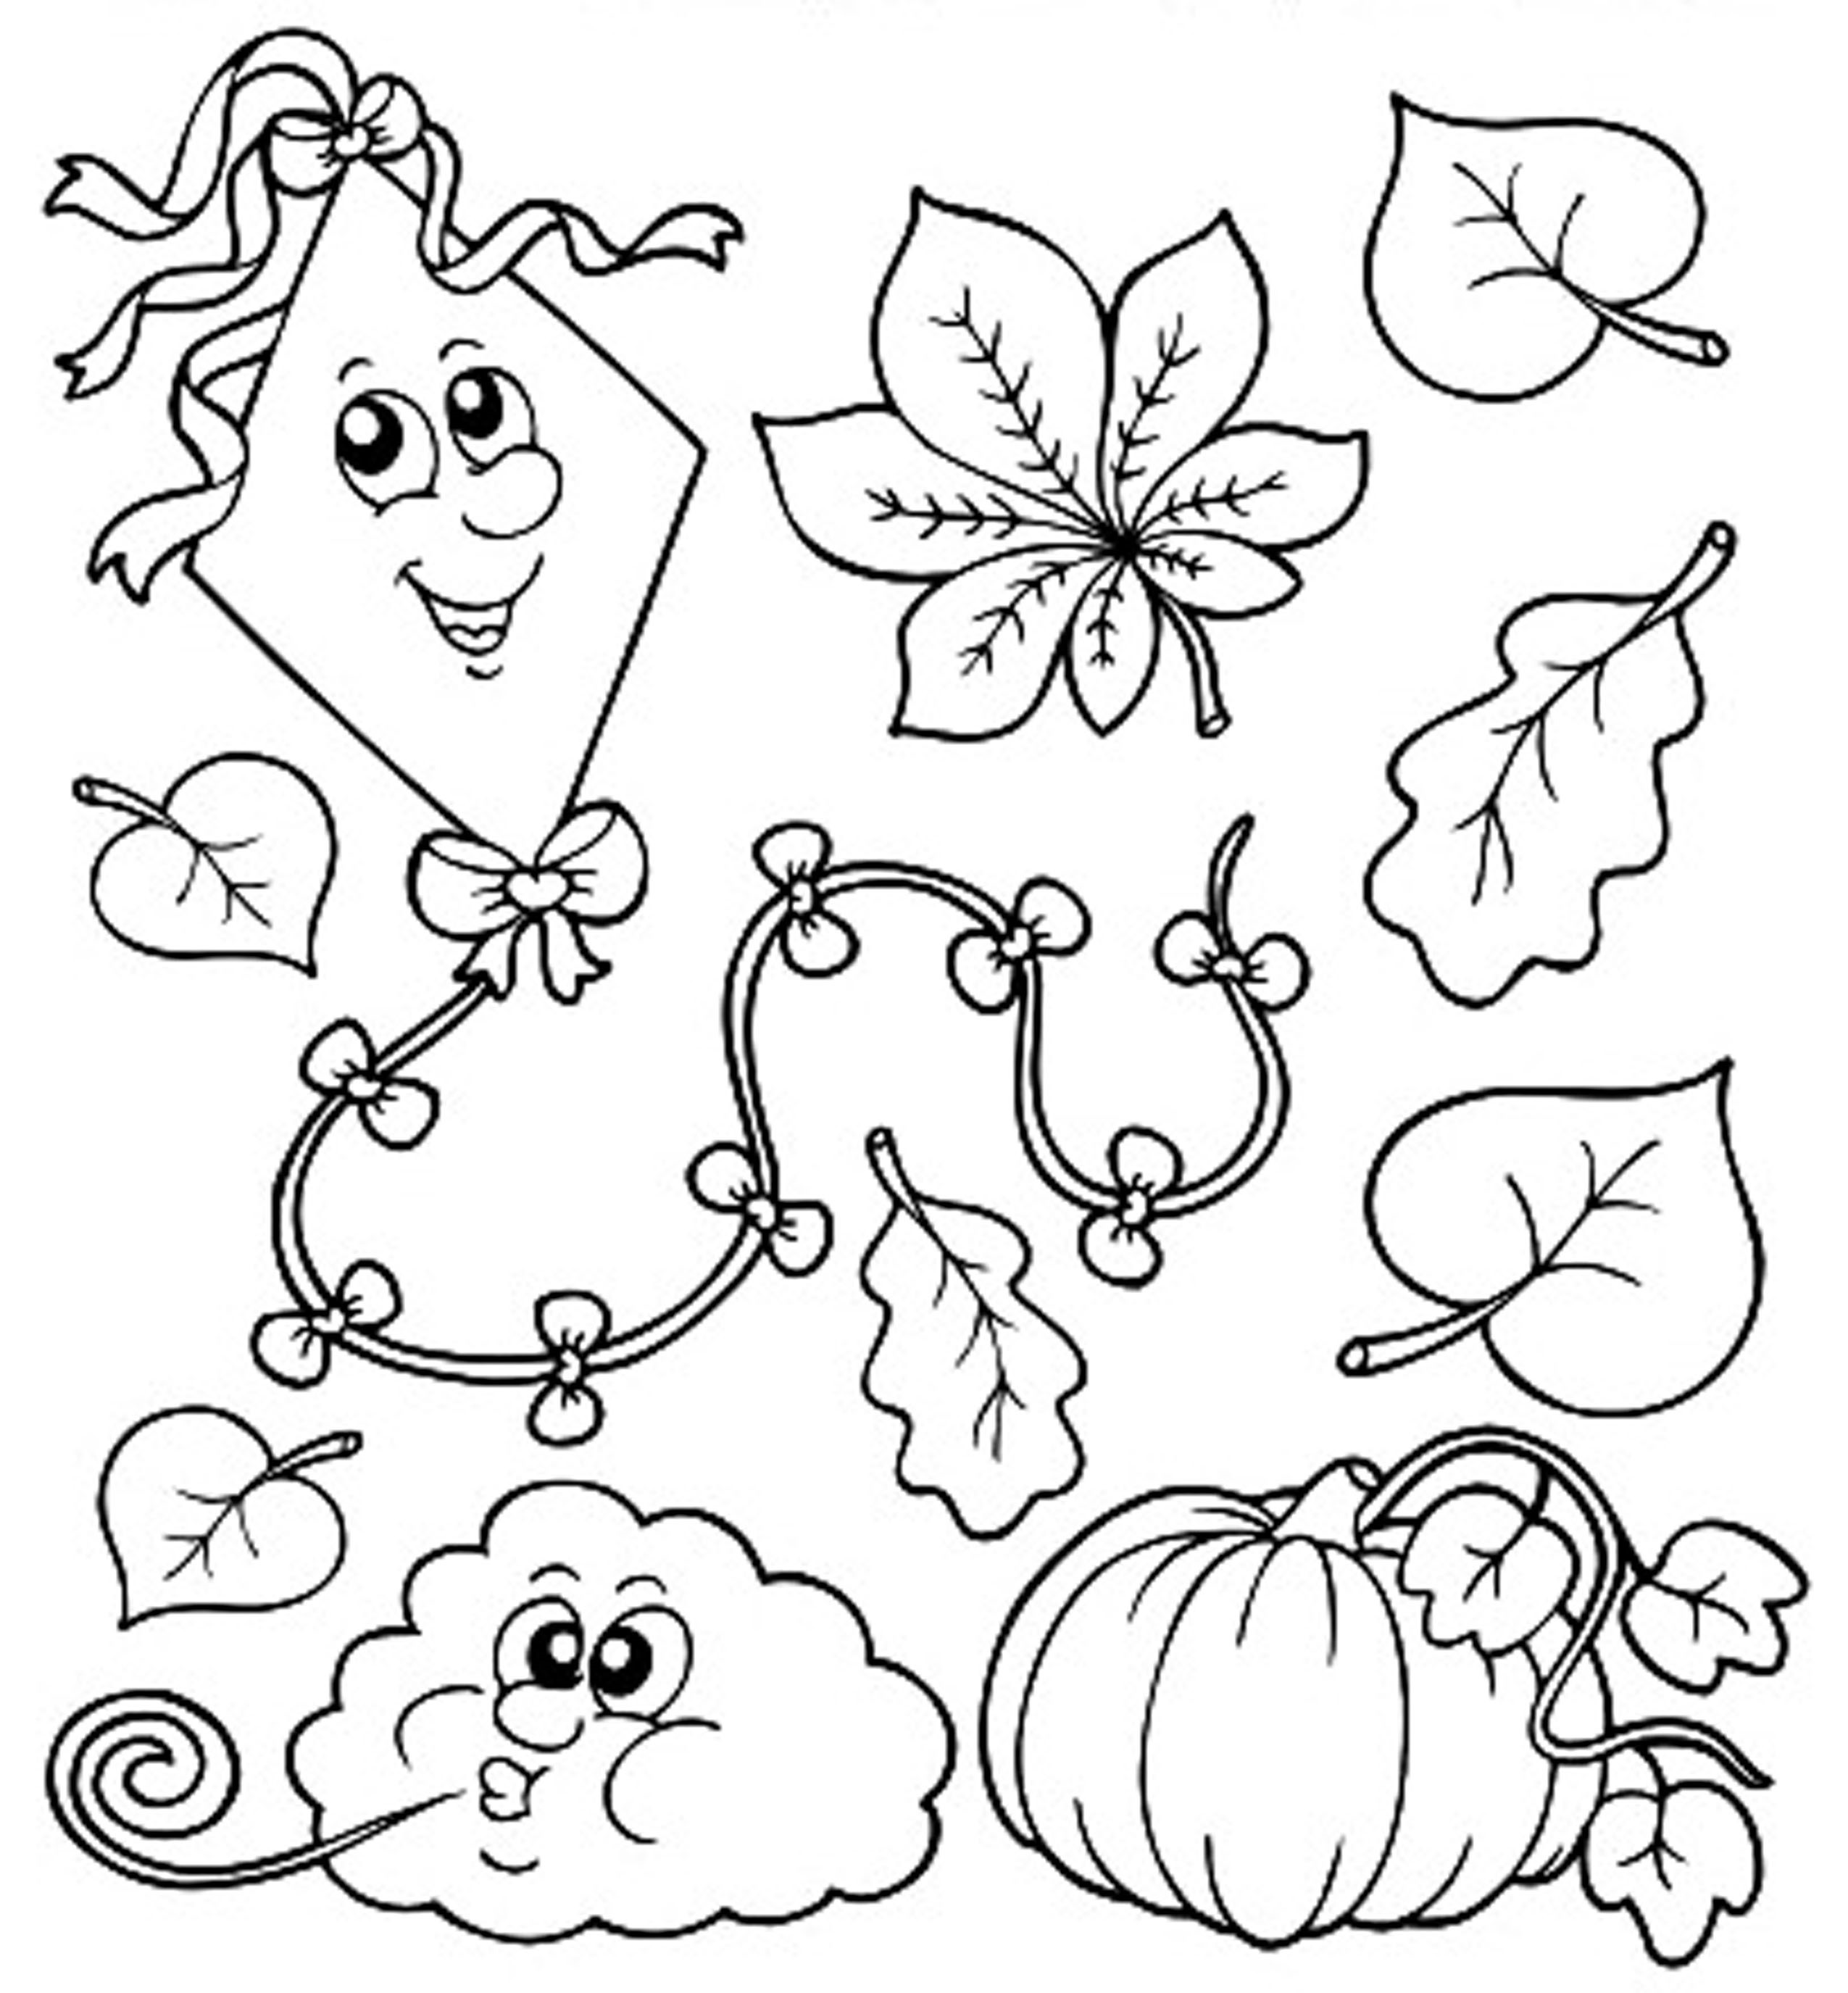 Fall Coloring Pages For Preschoolers Free At Getdrawings Com